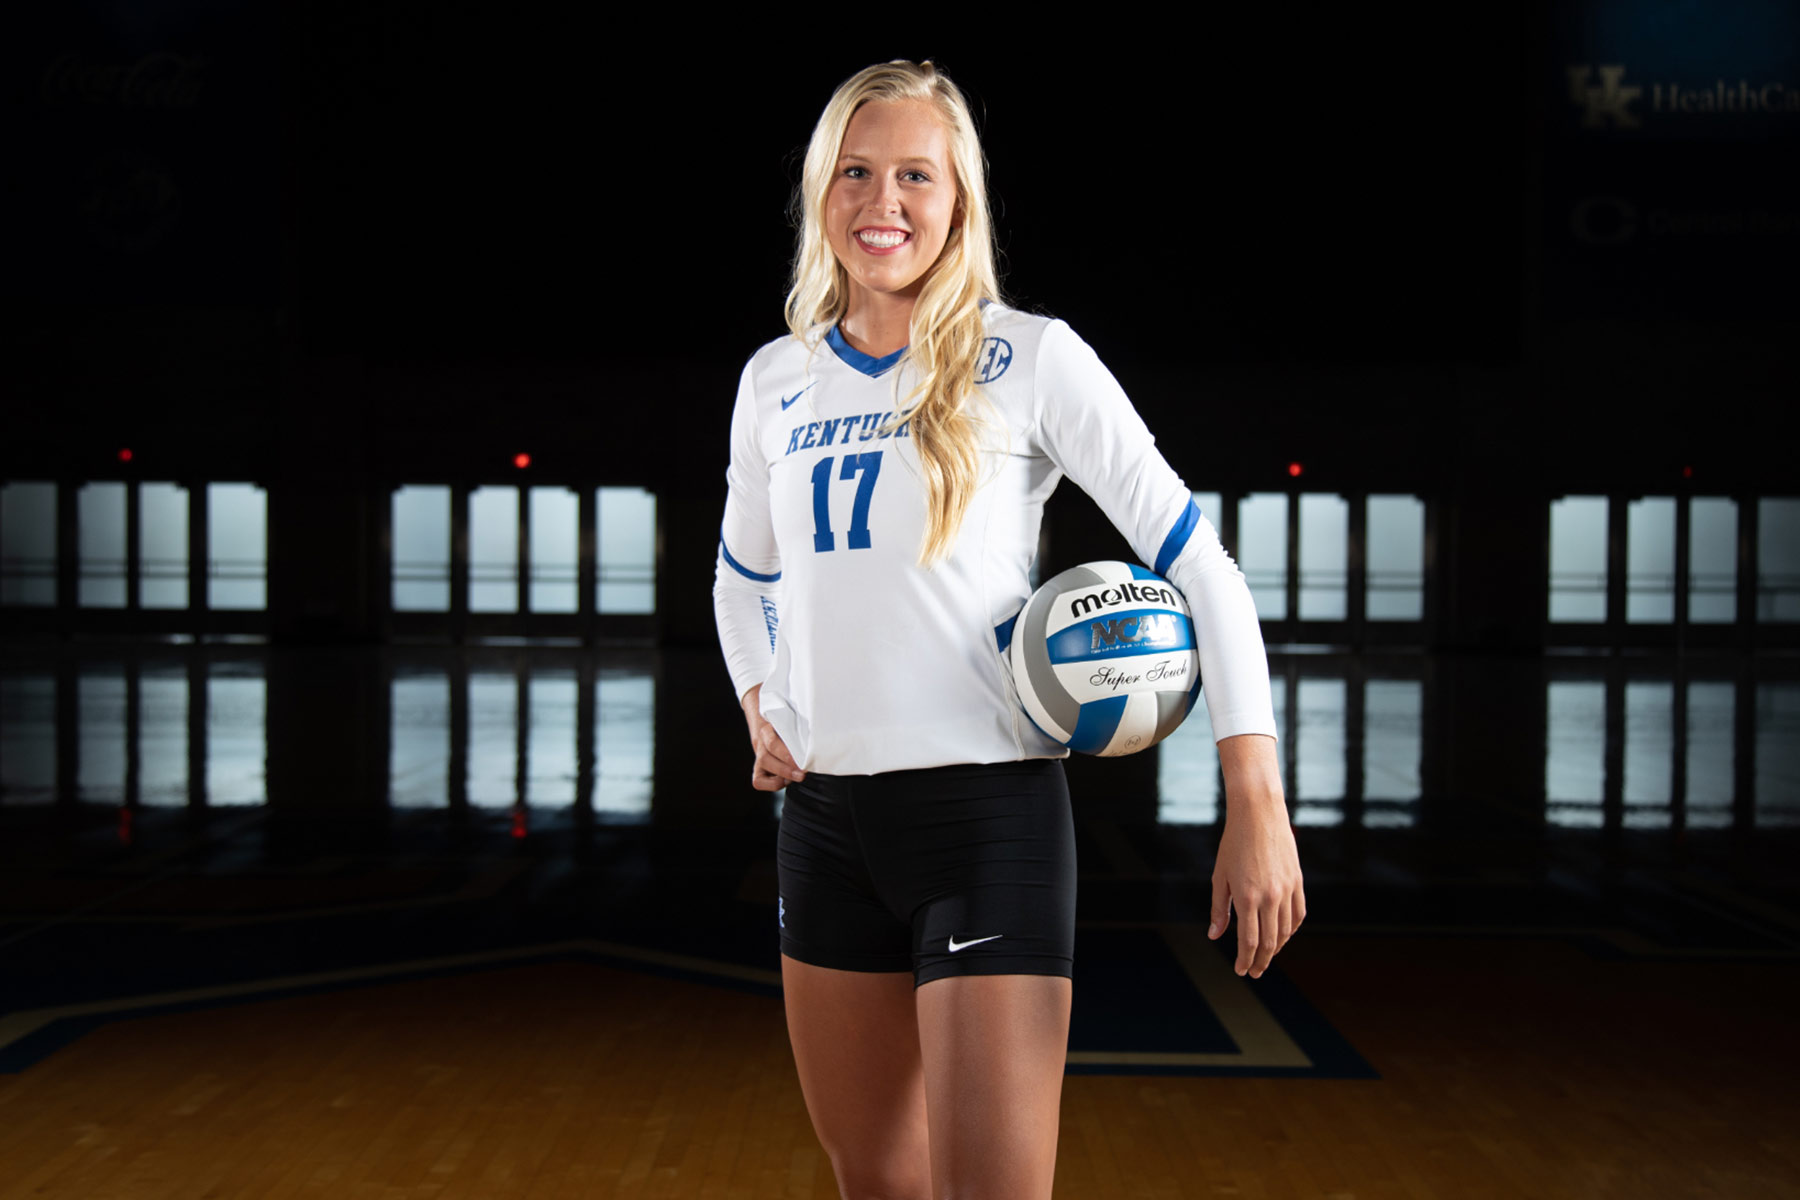 Alli Stumler, a tall white college-age girl with long blonde hair, poses in a gym. She is wearing a blue and white UK volleyball uniform and holding a volleyball under one arm. She is smiling.